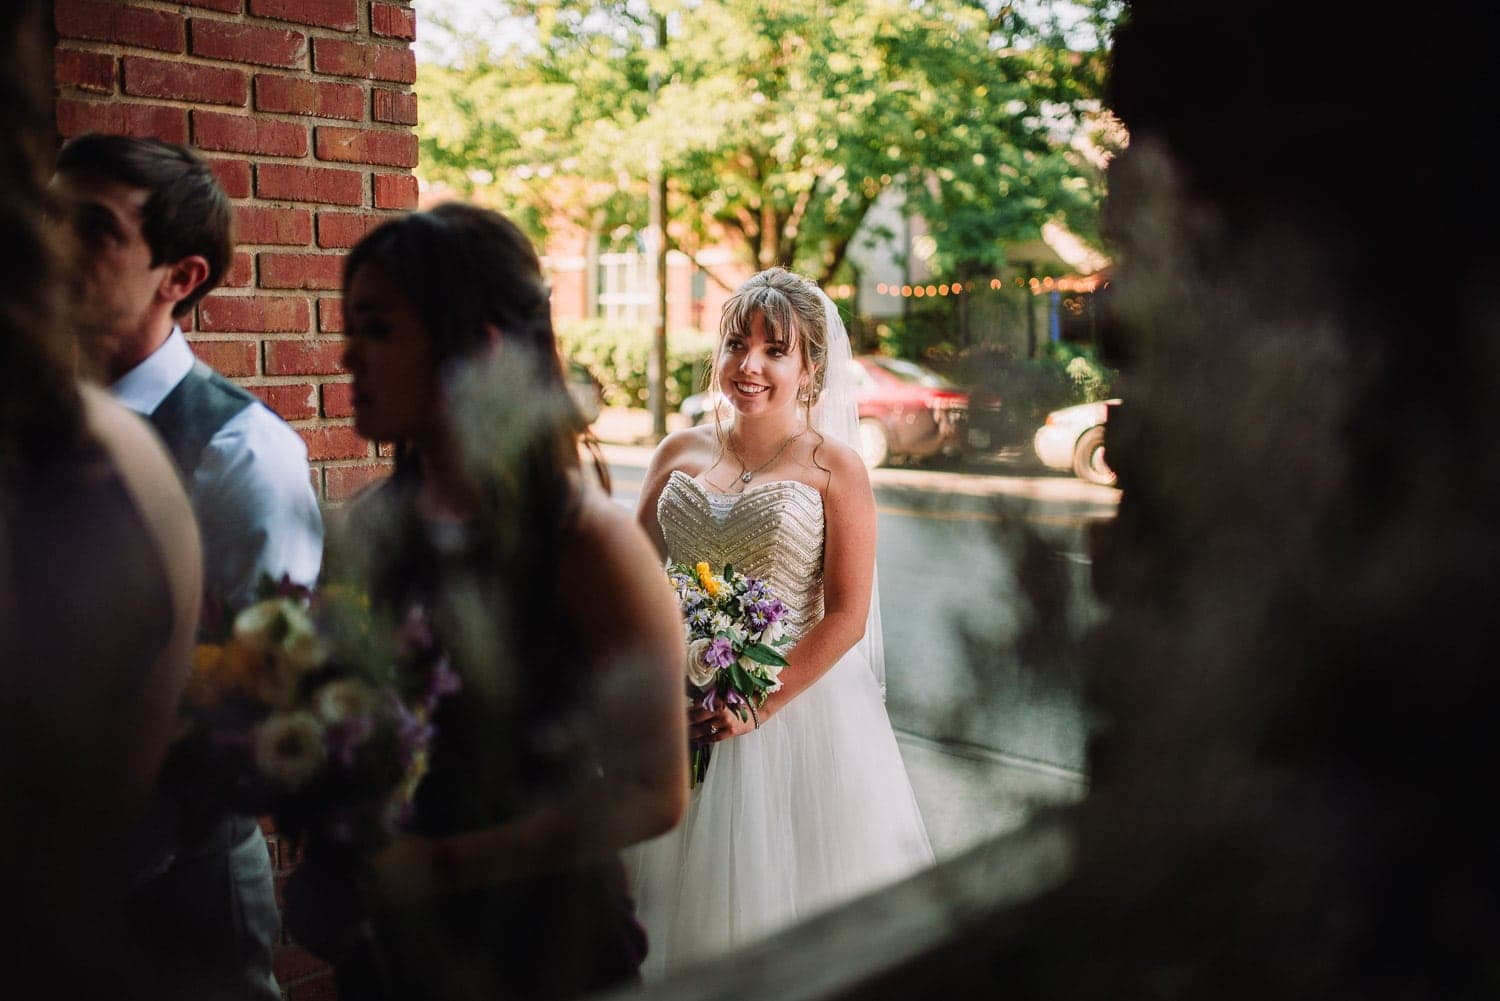 The bride is standing outside smiling as she waits to be escorted into her wedding.